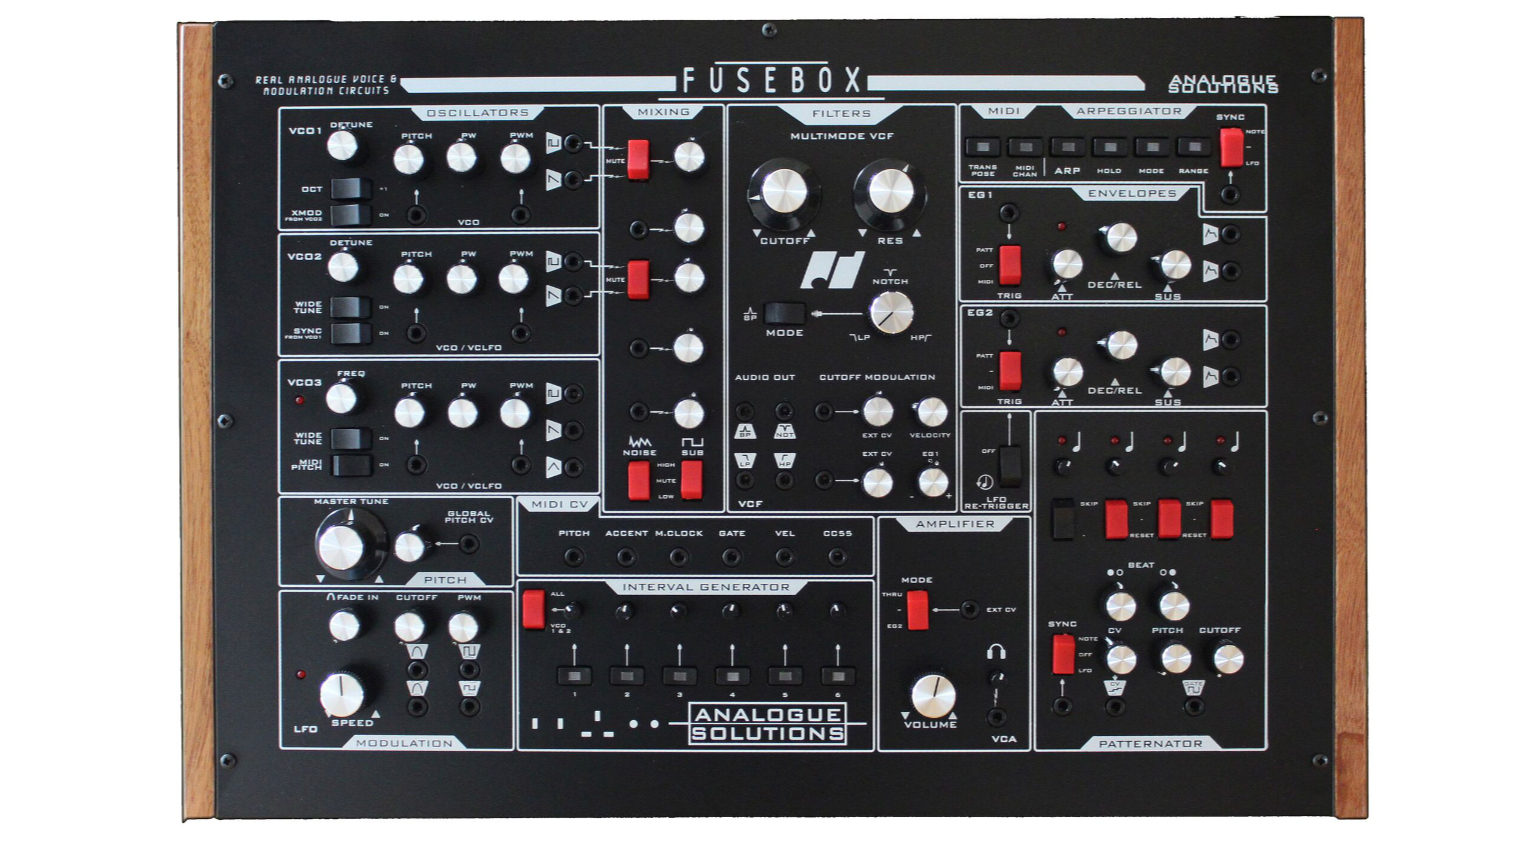 Analogue Solutions Fusebox Schwarz Sequencer Pulsar Fuse Box Related